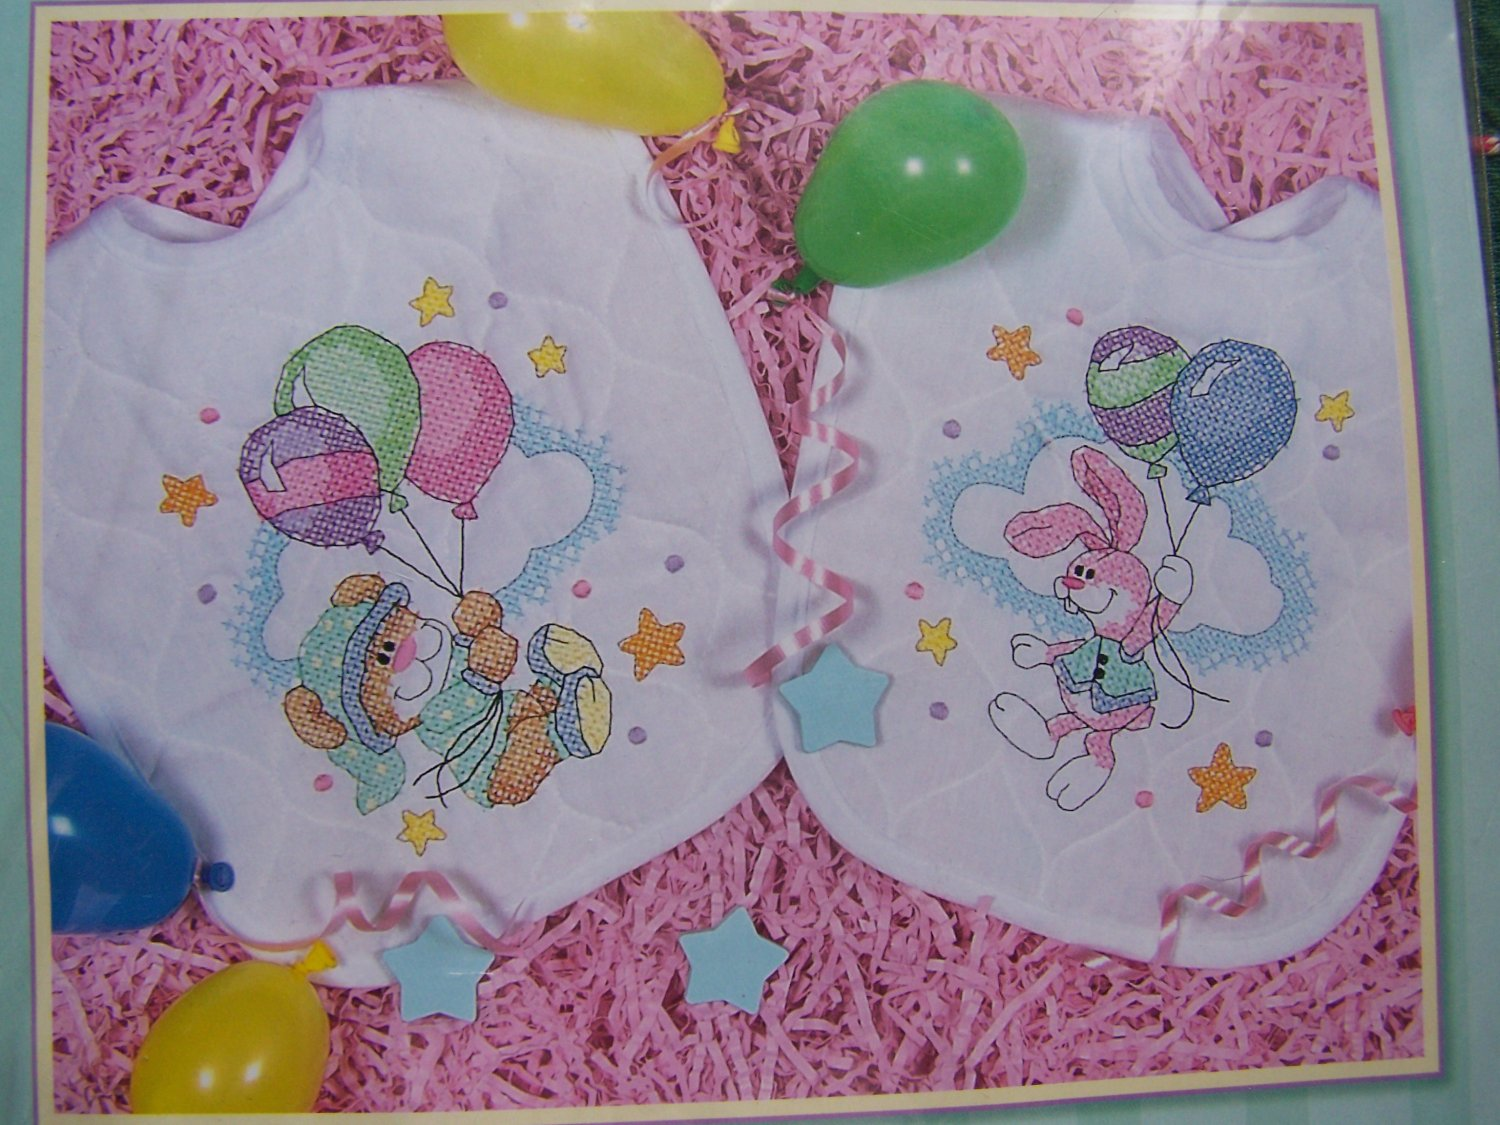 New Dimensions Baby Hugs Quilted Bib Stamped Cross Stitch Craft Kit 72993